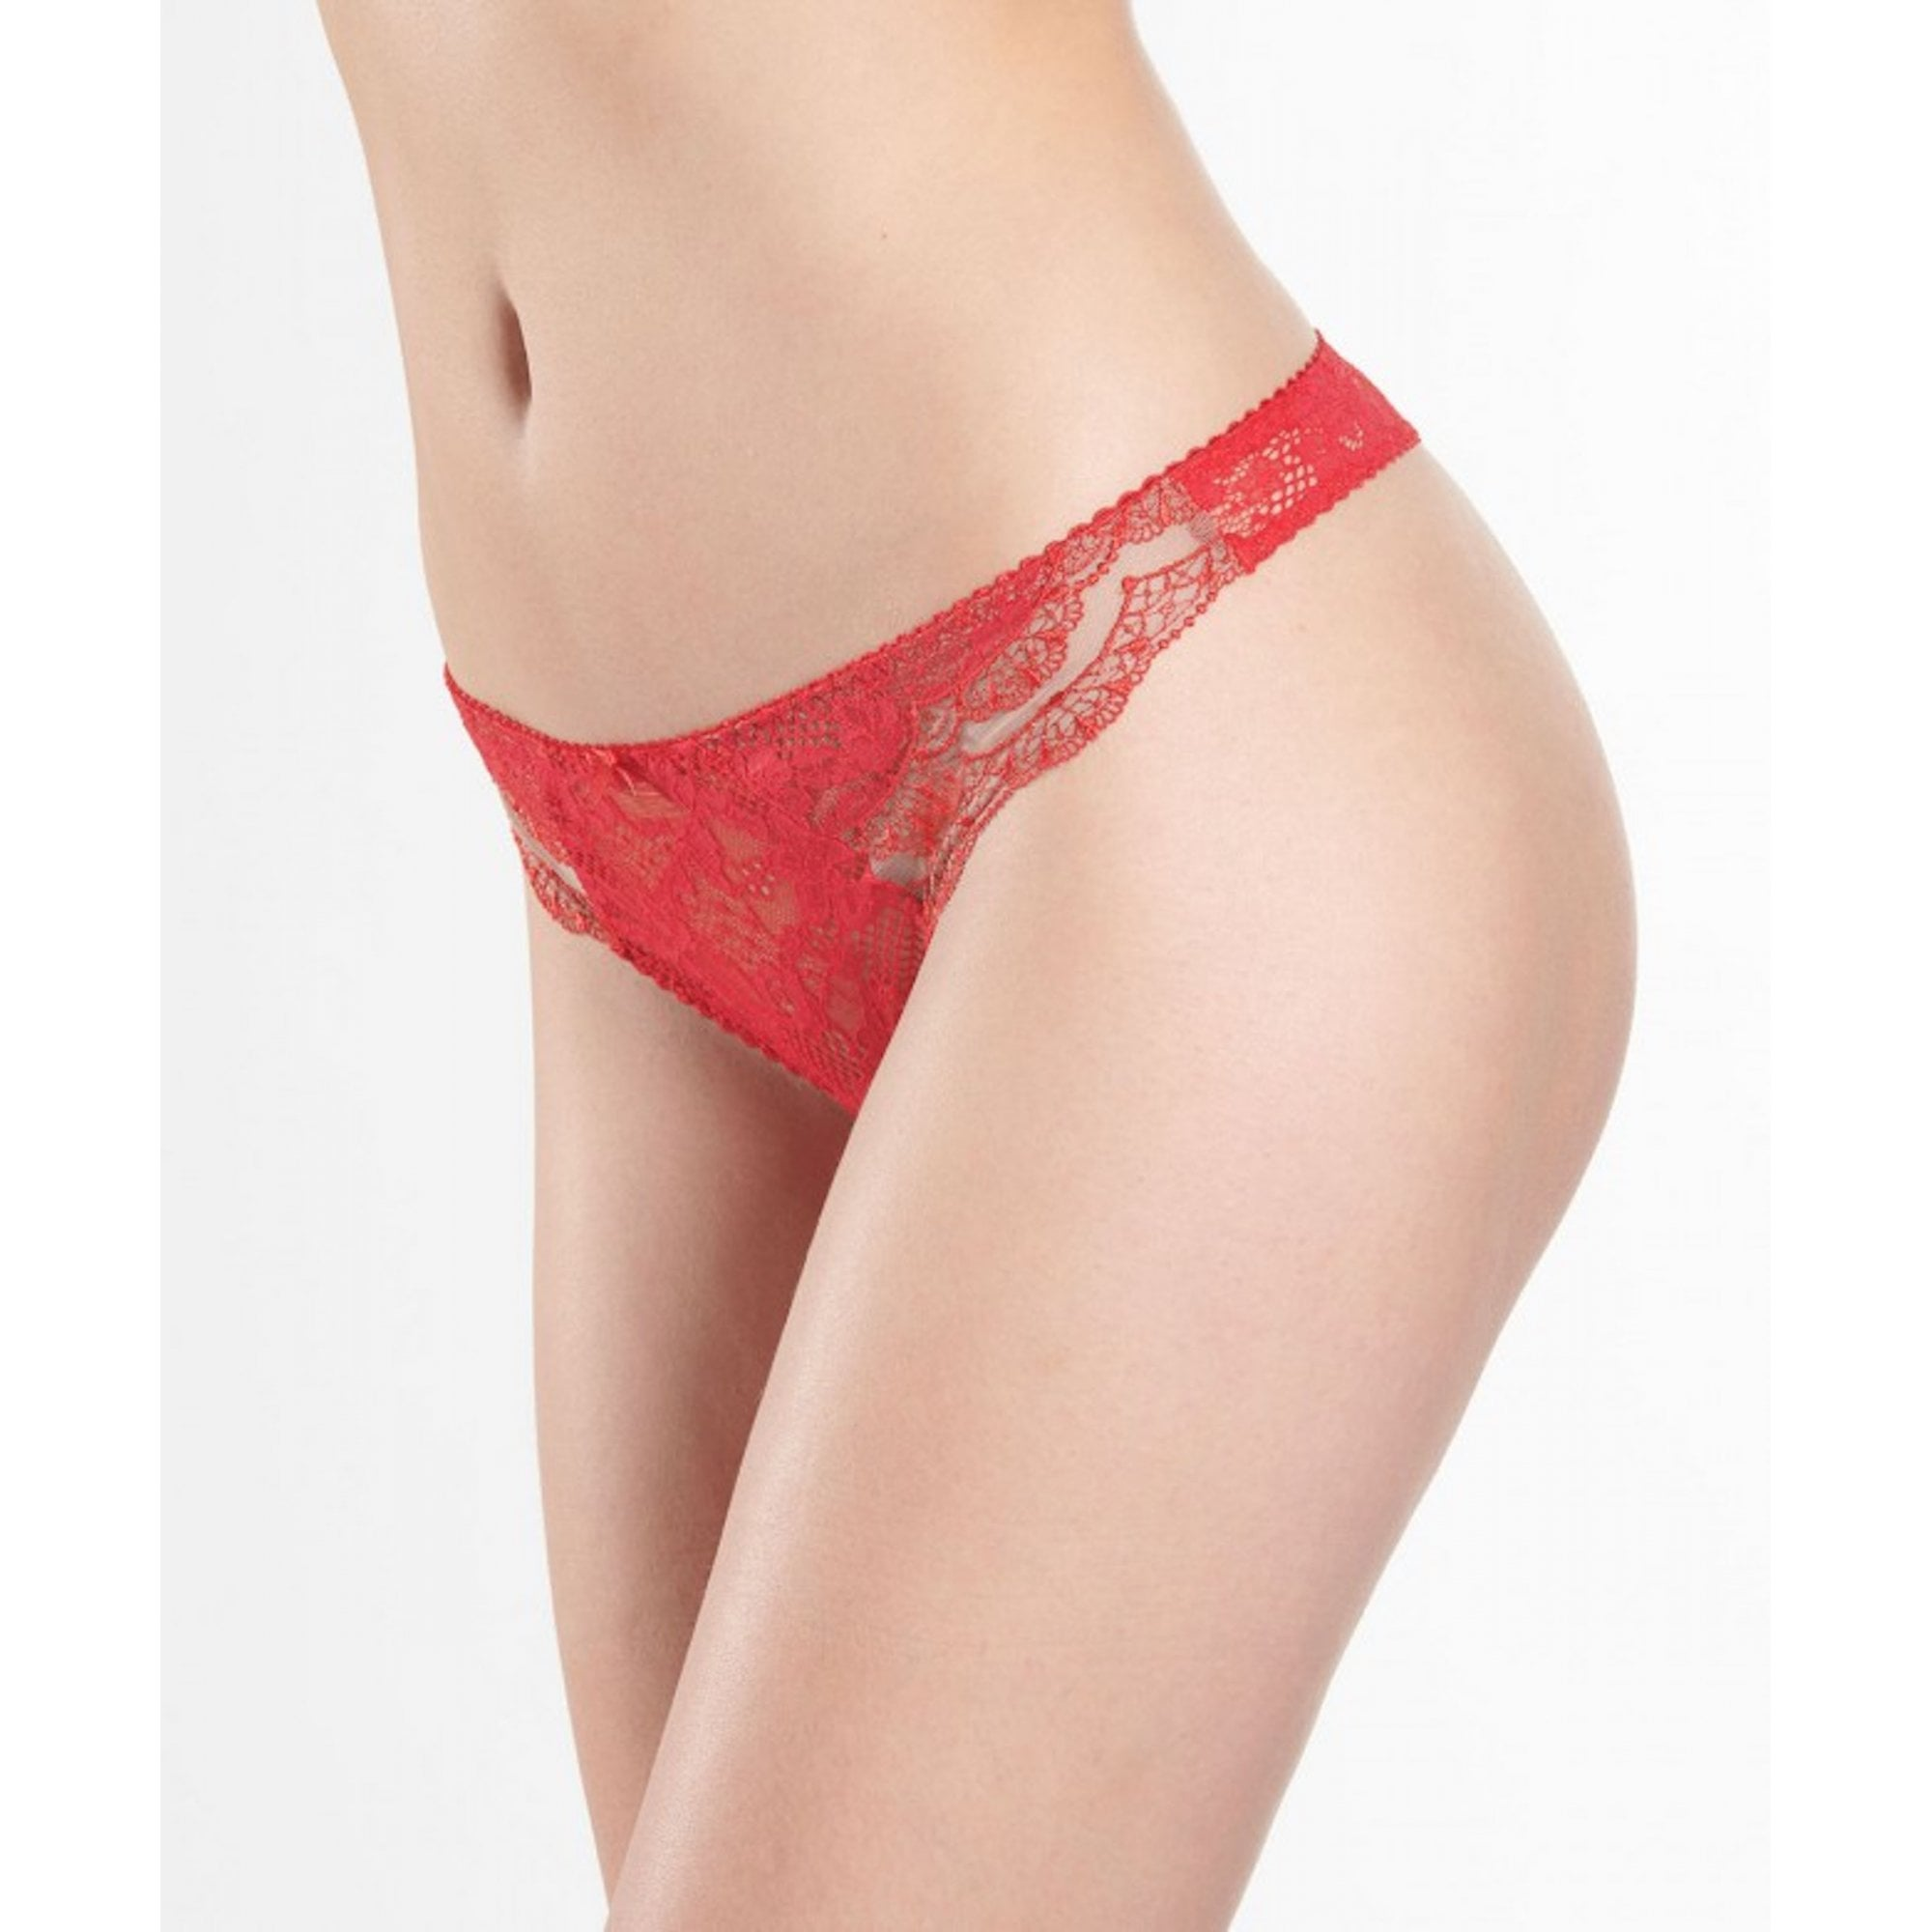 Aubade Soleil Nocturne Gala Red Tanga Brief